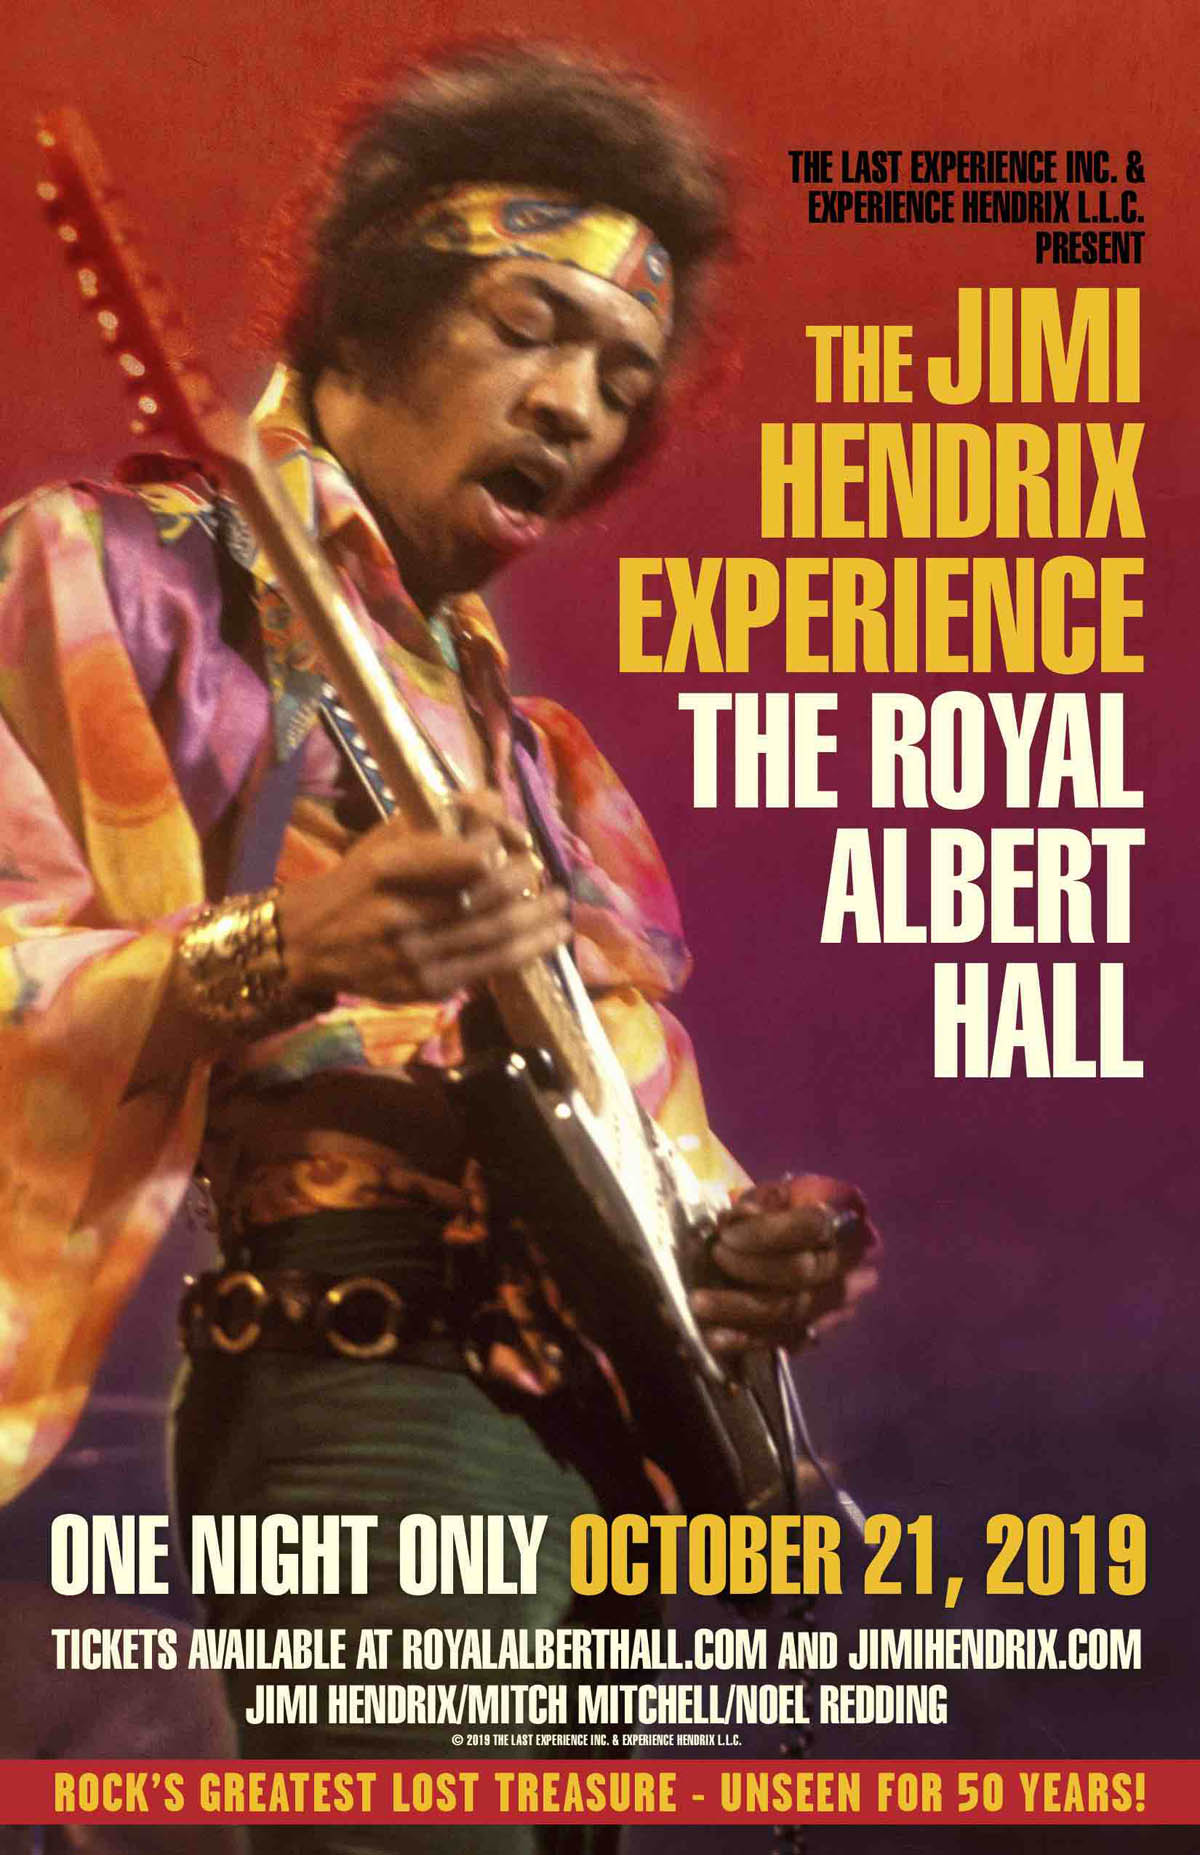 The Jimi Hendrix Experience return to the Royal Albert Hall for a special one-off concert movie | MusicRadar